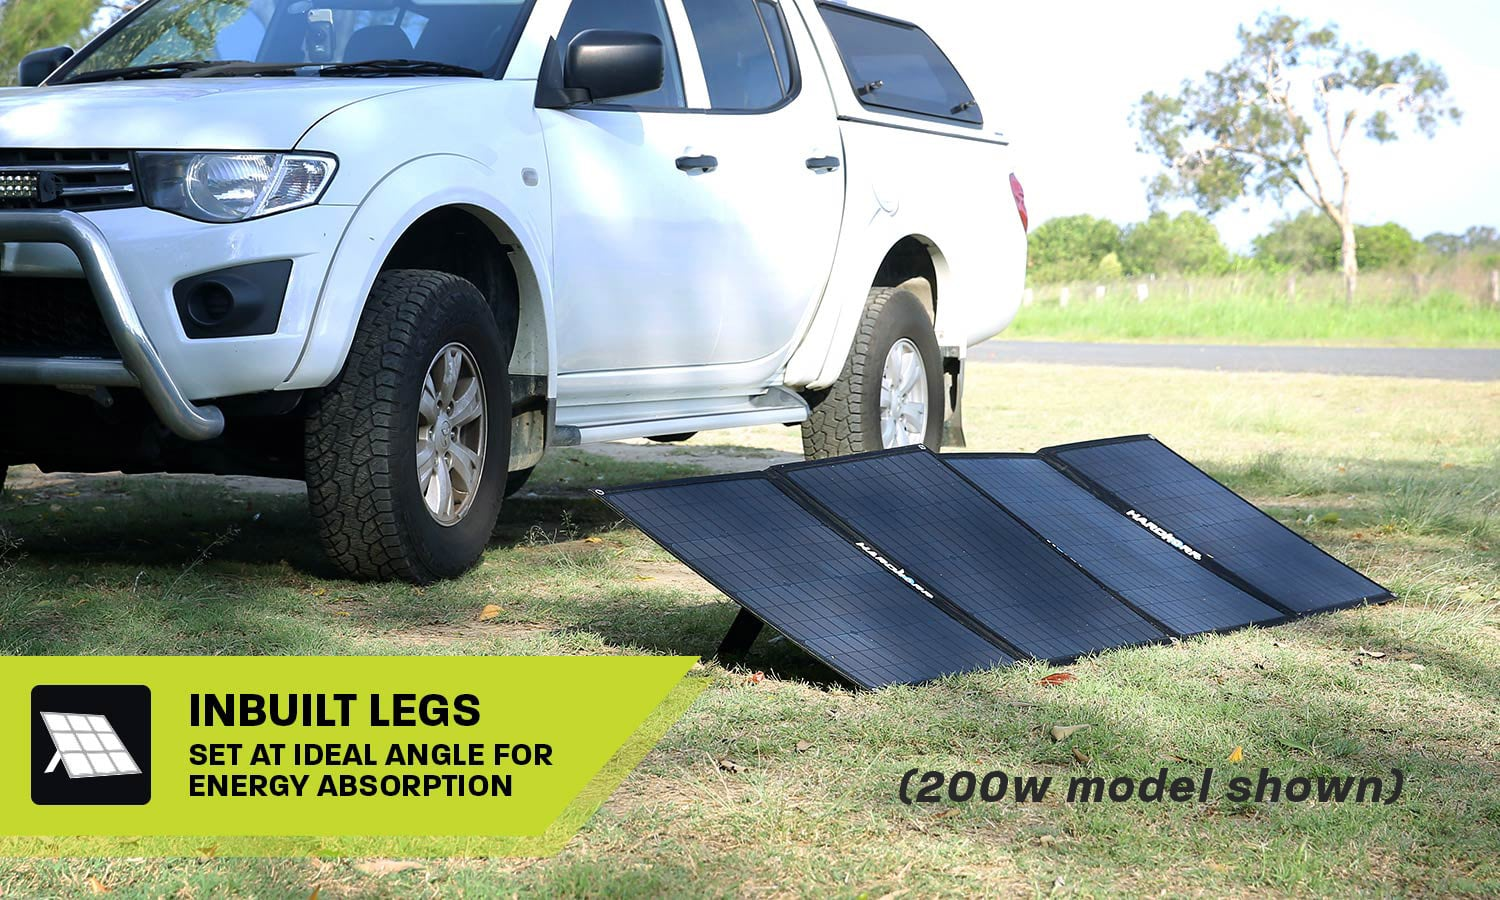 Heavy Duty Portable Solar Panels 150w Inbuilt Legs